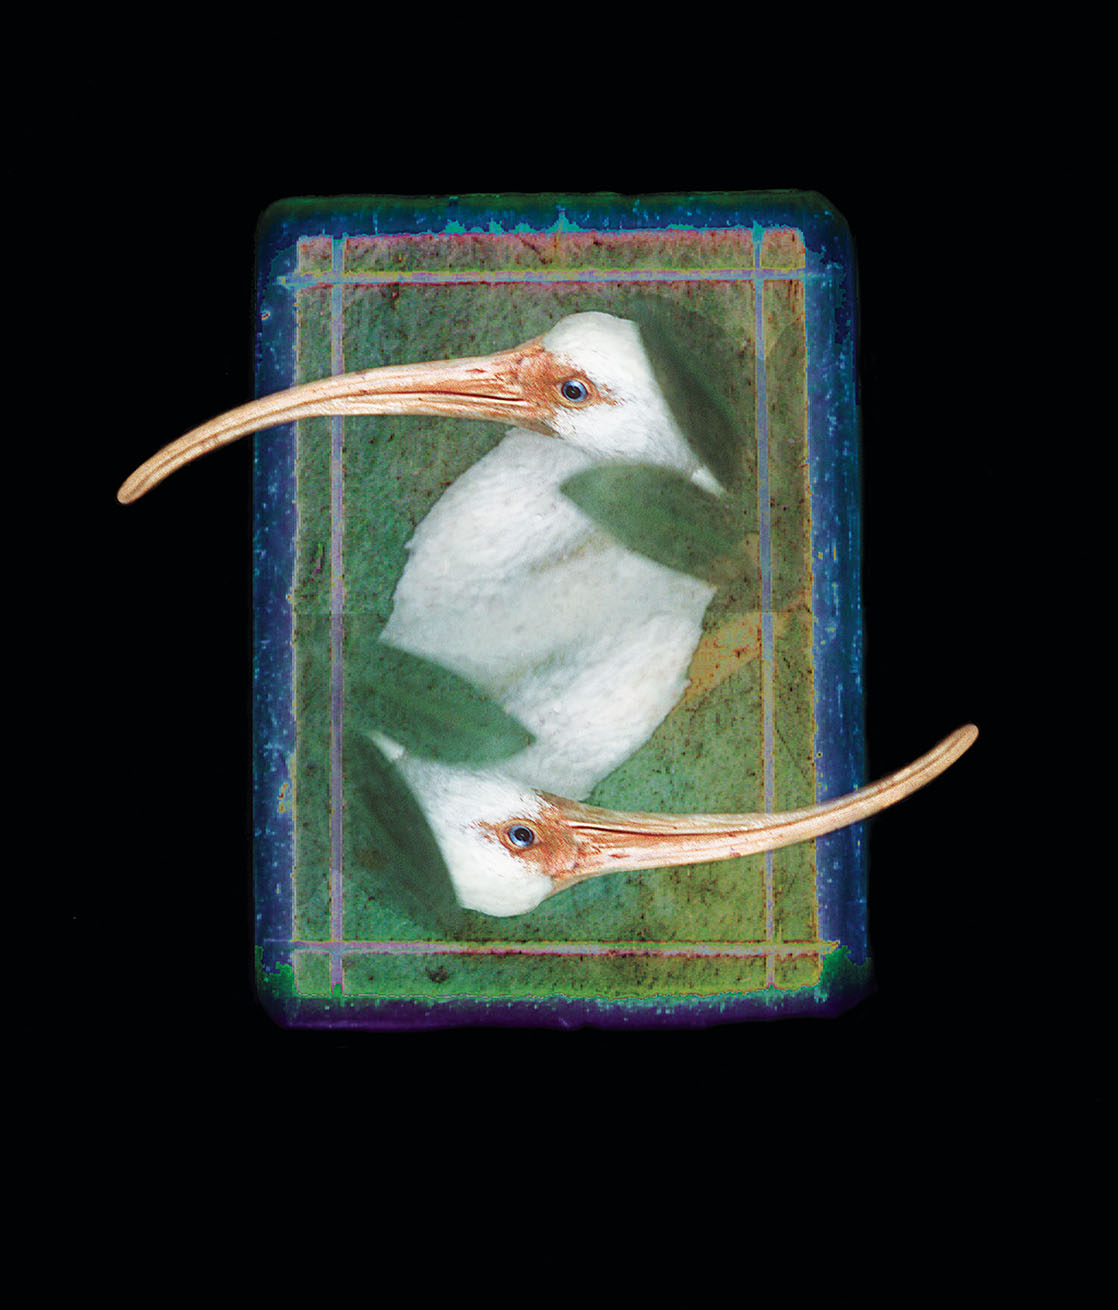 Missing Piece–Ibis, a photograph featuring two Ibis birds overlaid on each other, on a rectangular backdrop of green, blue, and purple